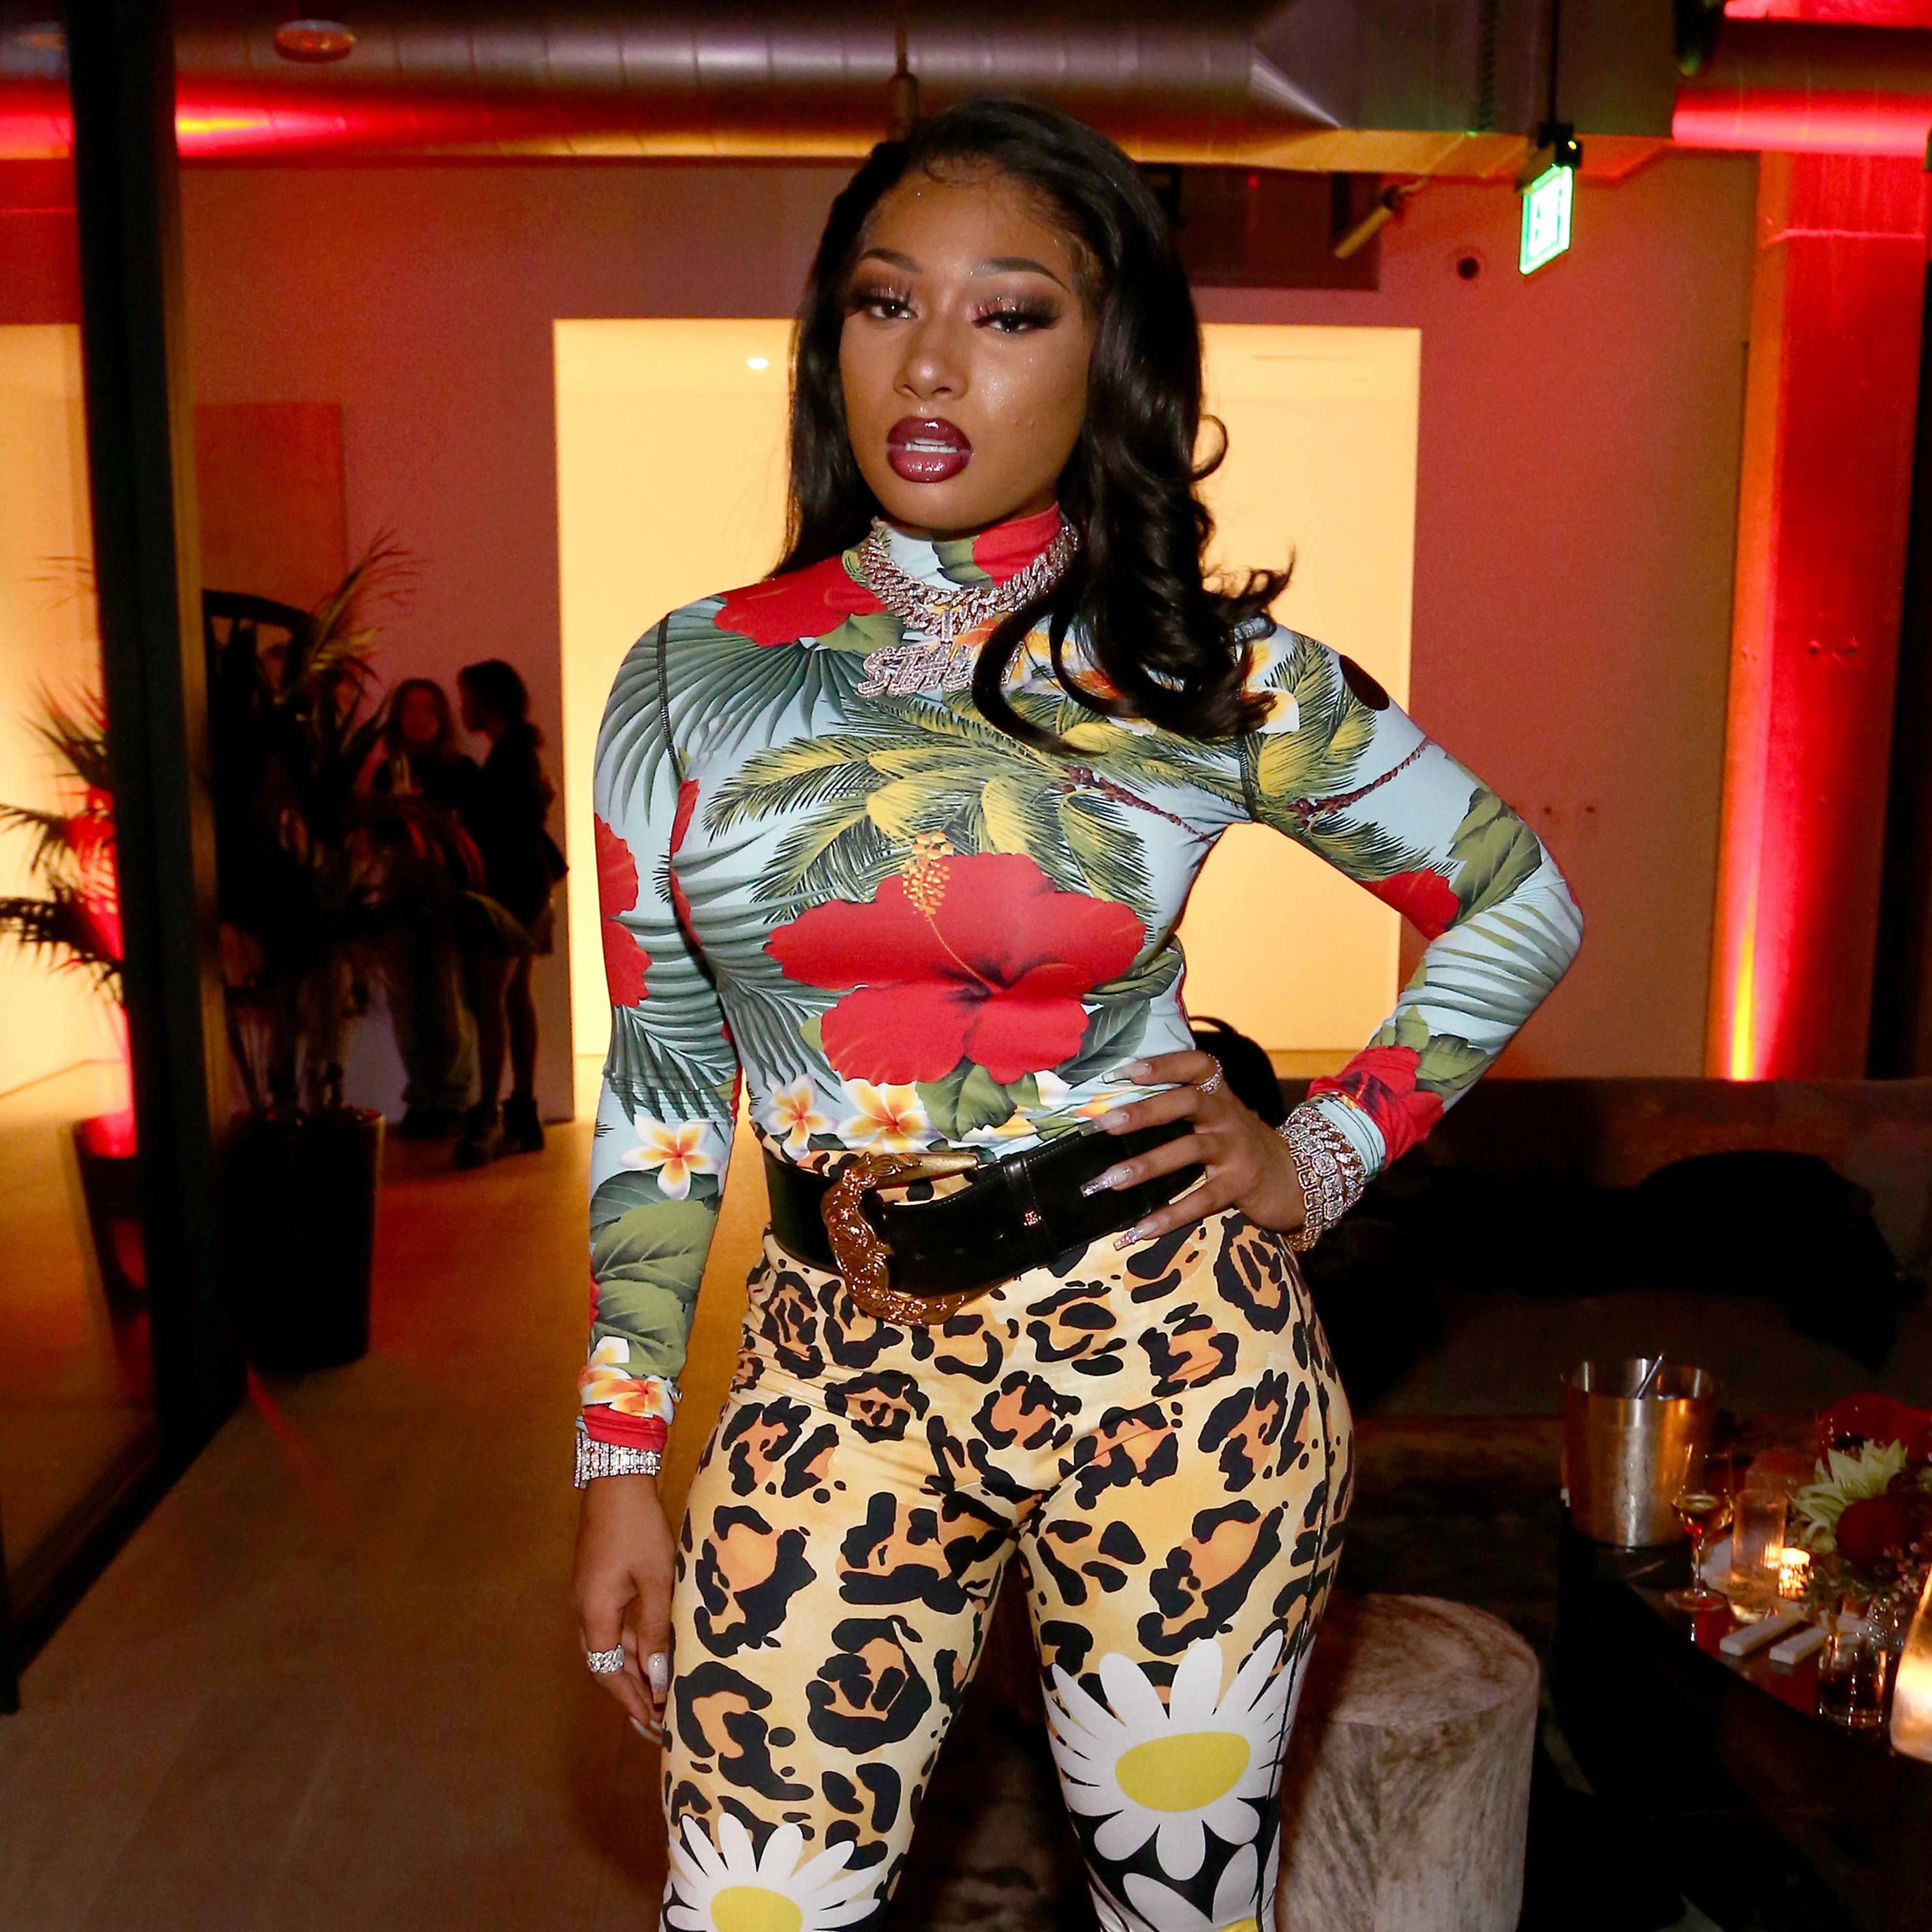 Megan Thee Stallion Releases New Song